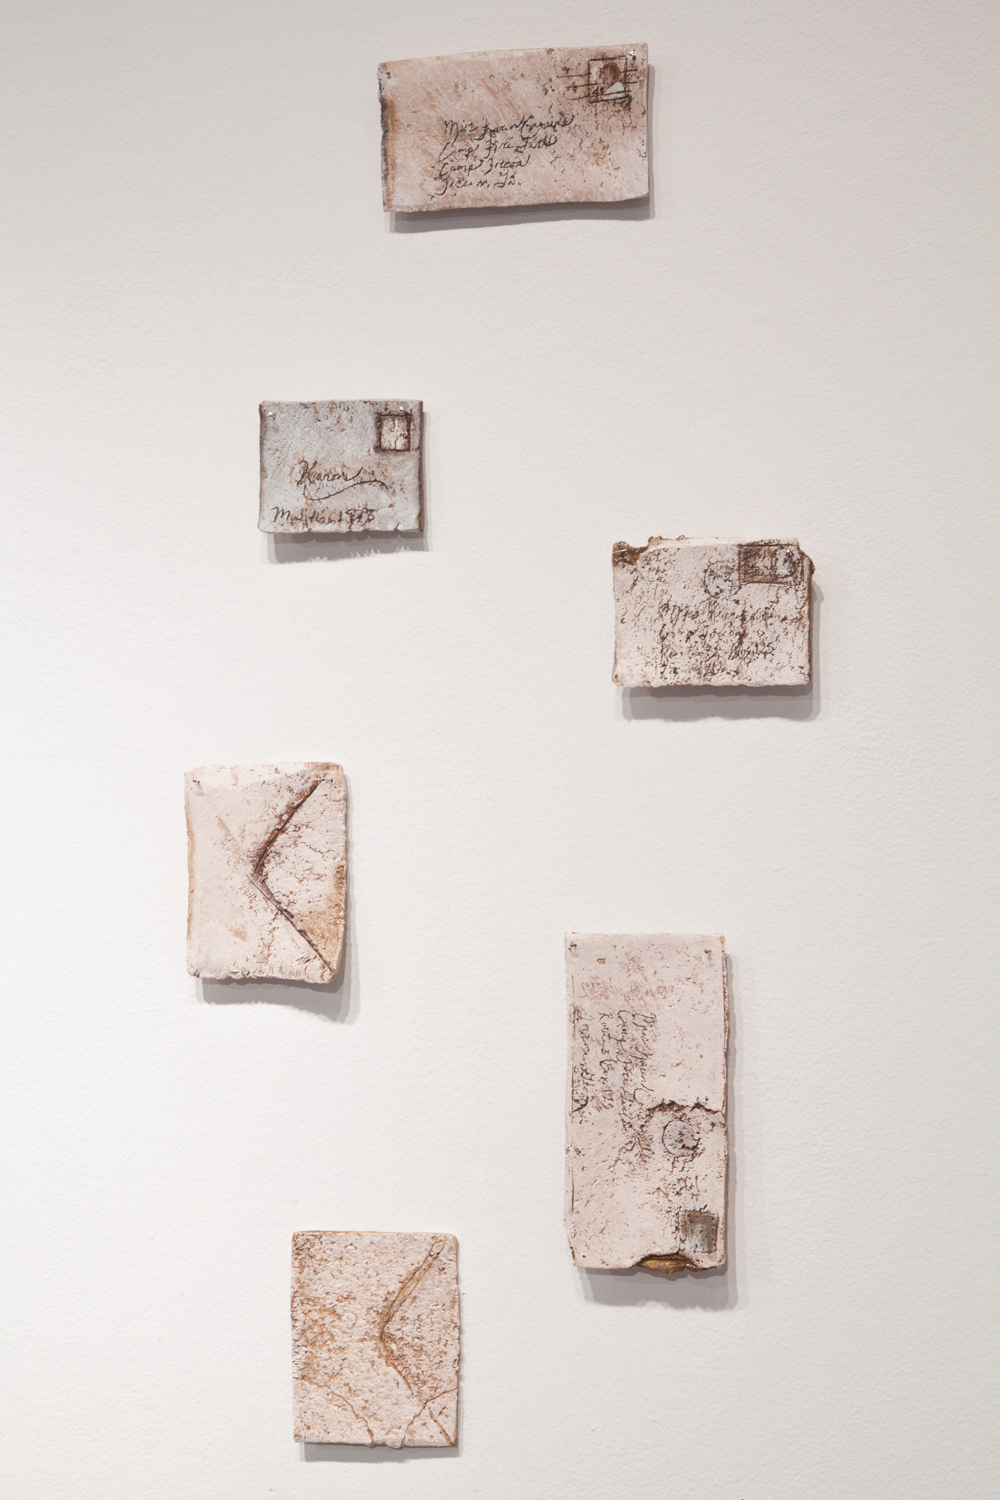 Claire Shurley     Letters to Karen     reclaimed stoneware, dirt from Shurley farmland, slips, stain,iron oxide, glaze, cone 6 oxidation